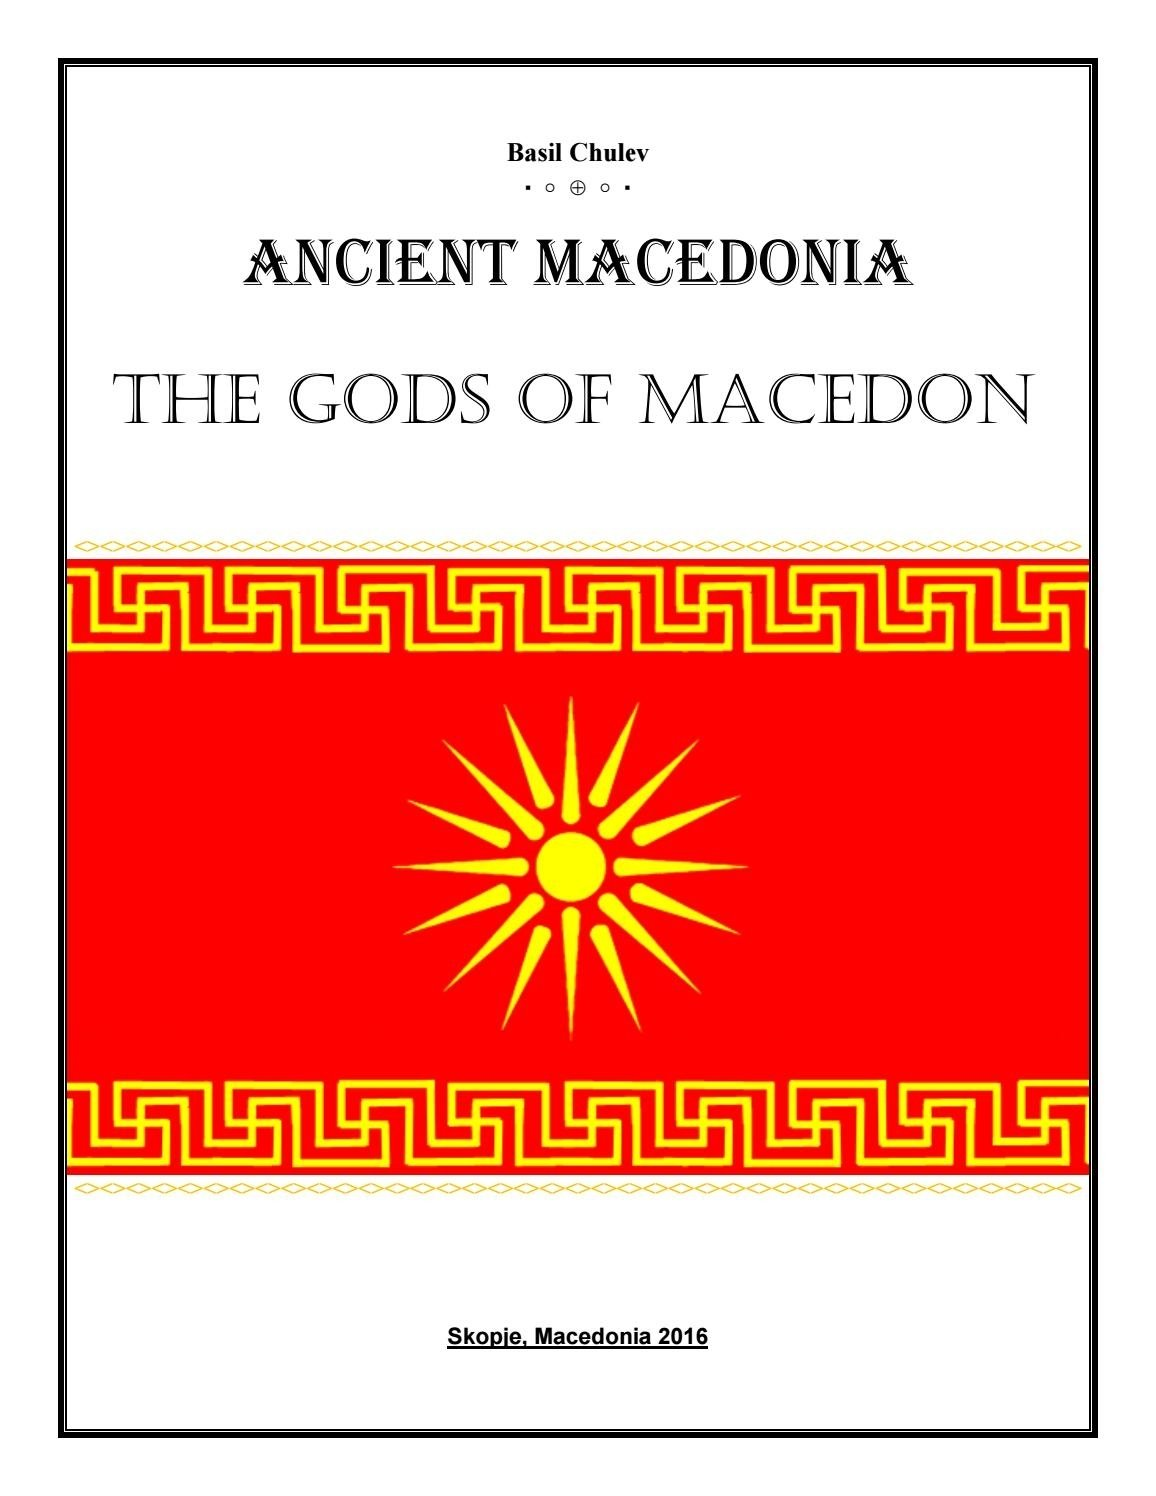 10 Perfect The Phoenicians Borrowed Religious Ideas From ancient macedonia the gods of macedonbasil of macedon issuu 2020